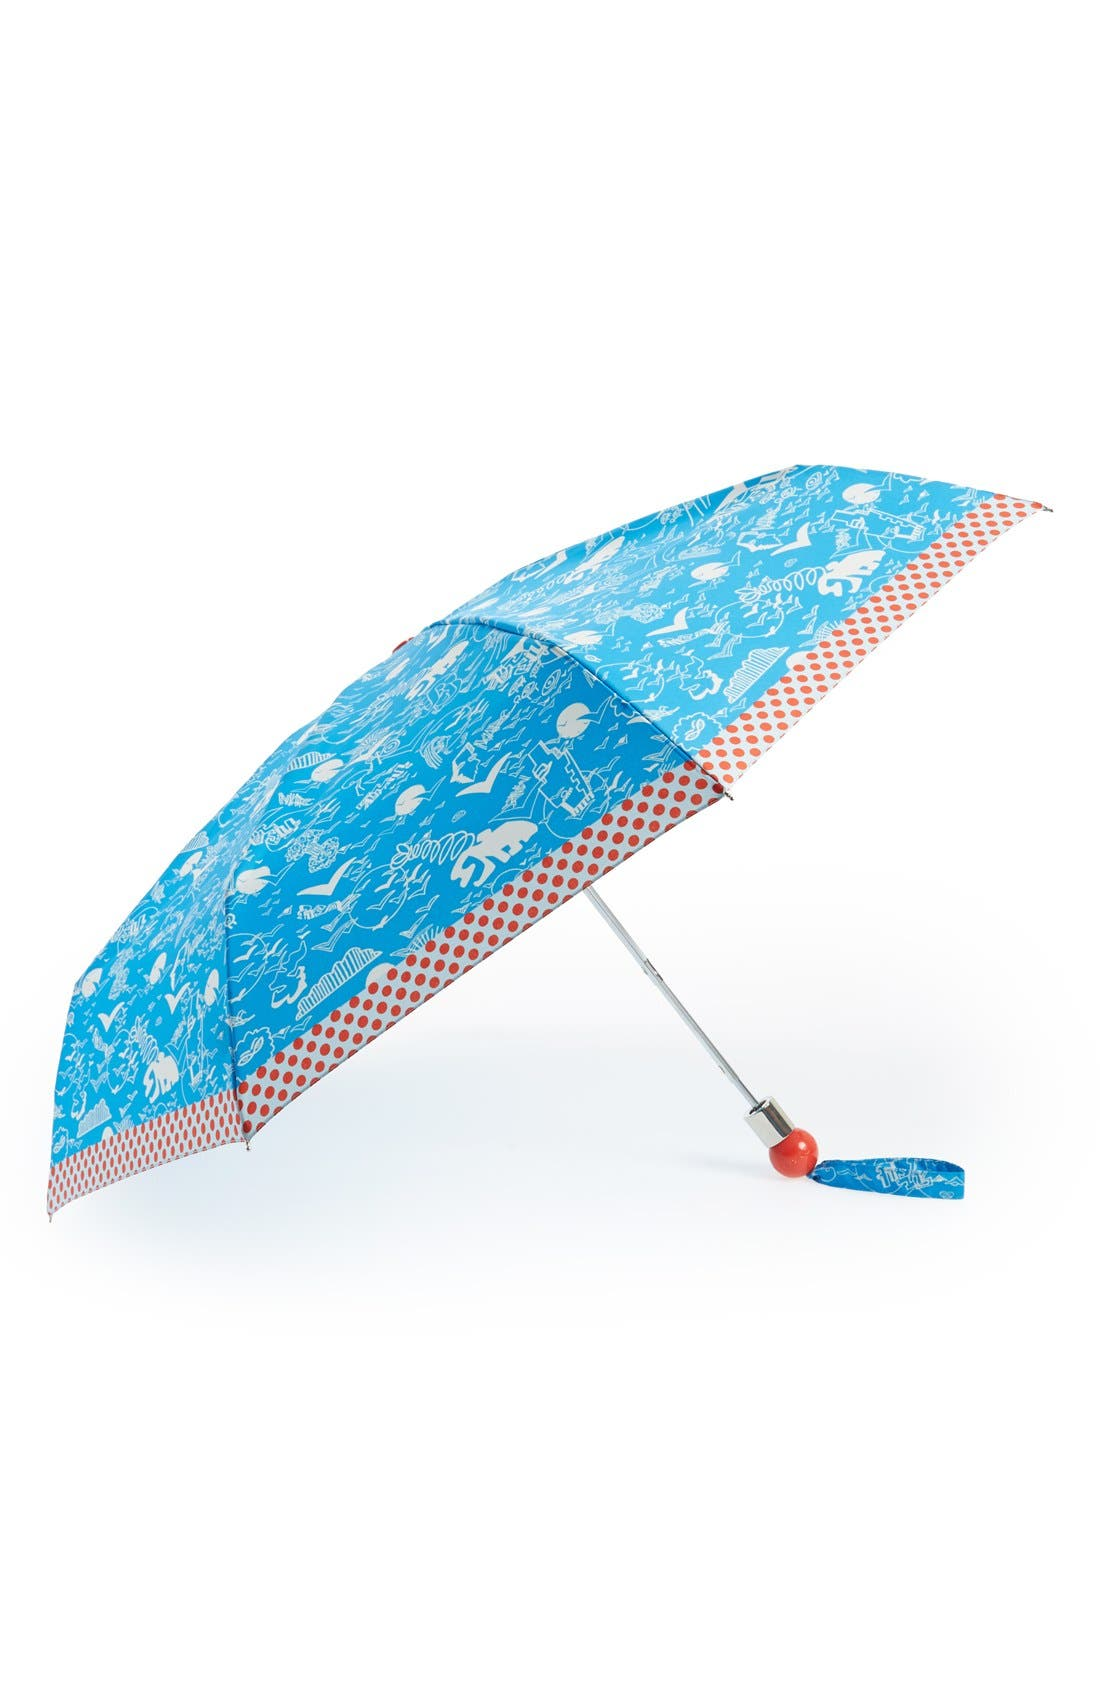 Alternate Image 1 Selected - MARC BY MARC JACOBS 'Doodle Print' Umbrella